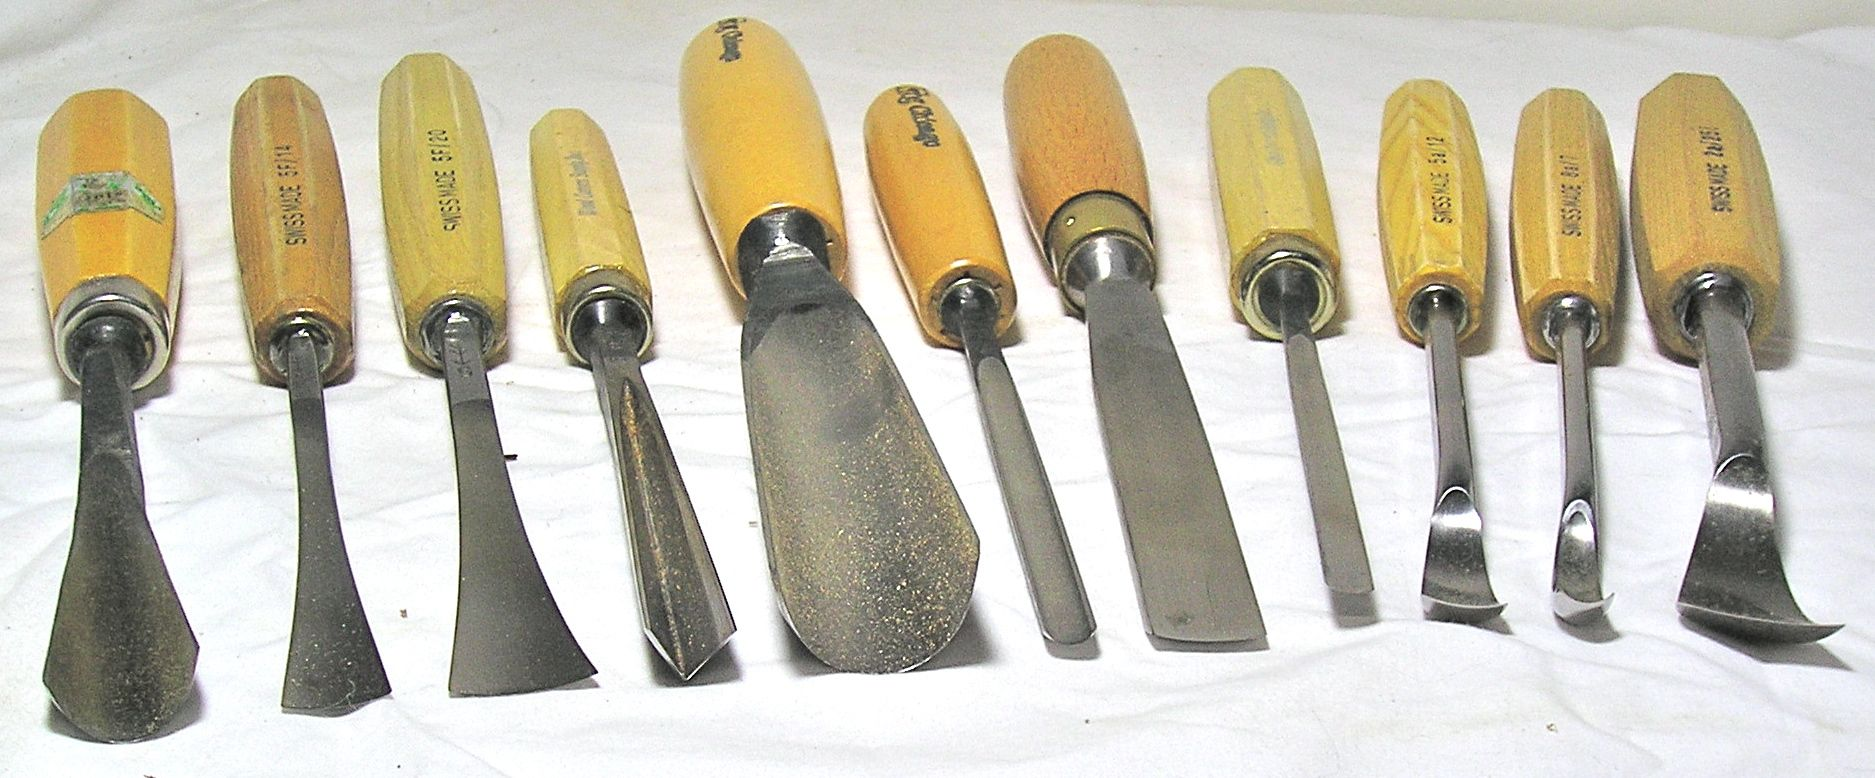 woodcarvers tools